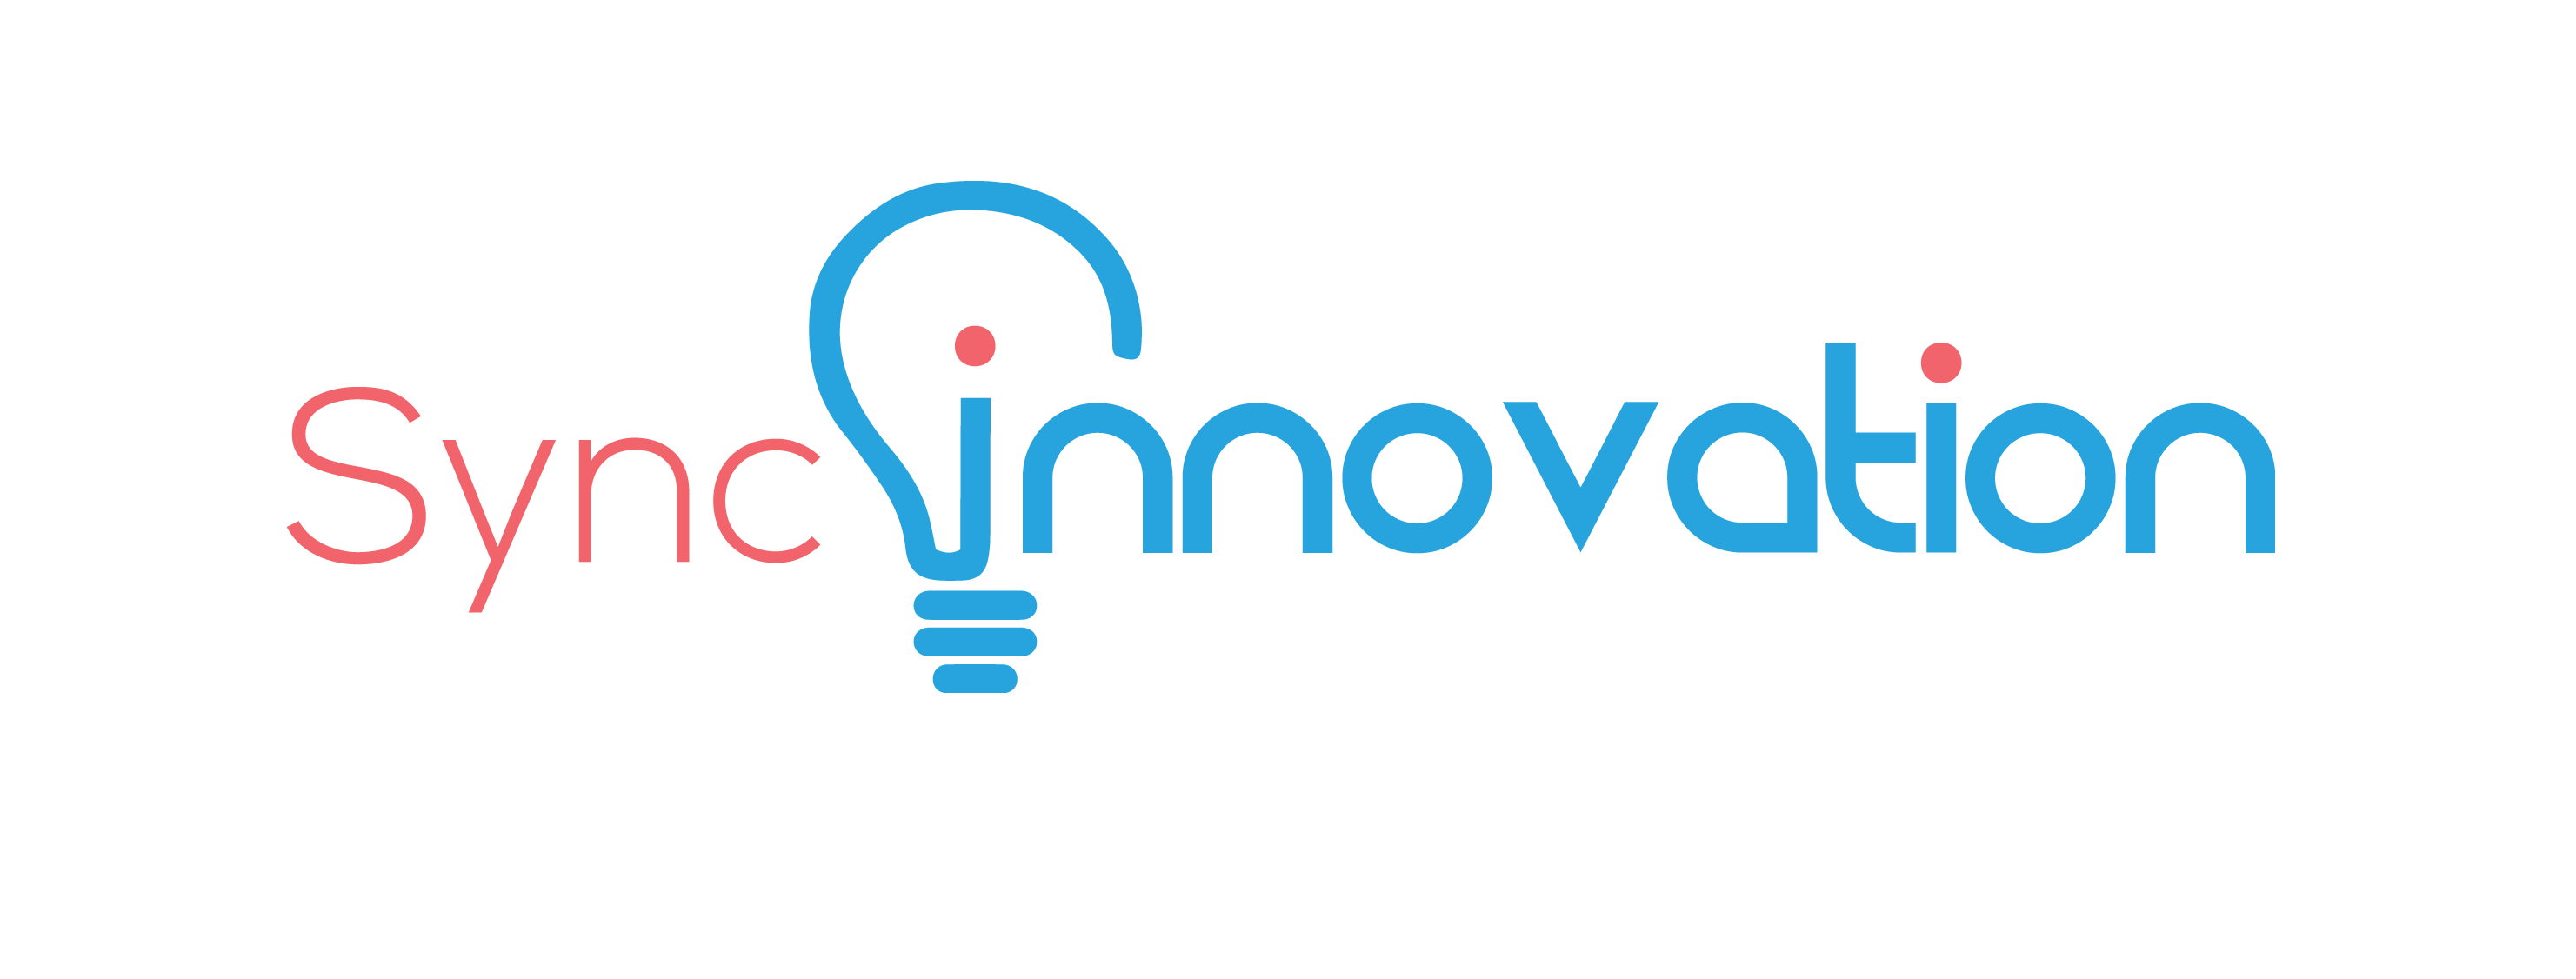 Sync Innovation Company logo